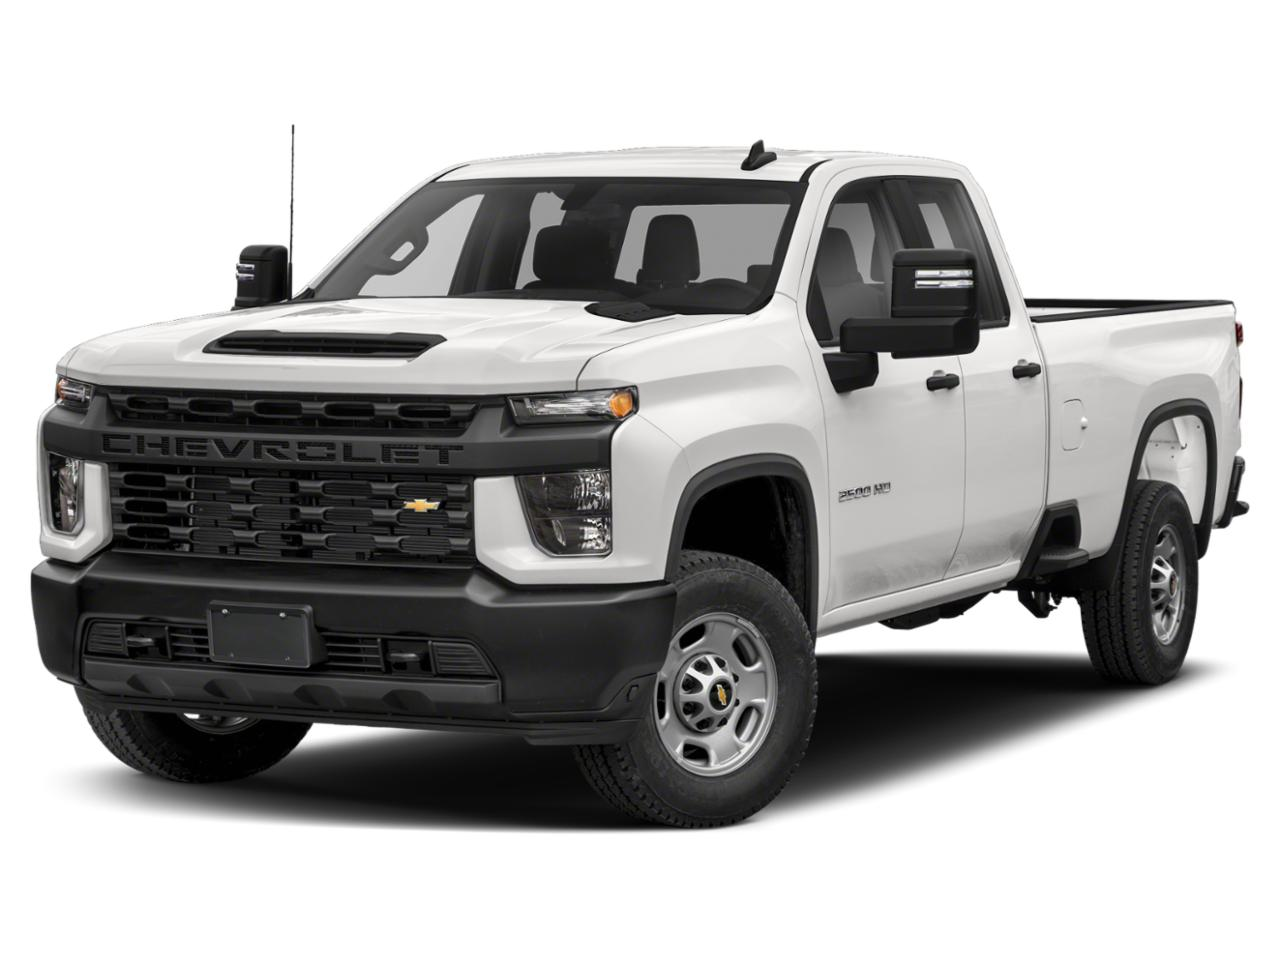 2021 Chevrolet Silverado 2500HD Vehicle Photo in Greeley, CO 80634